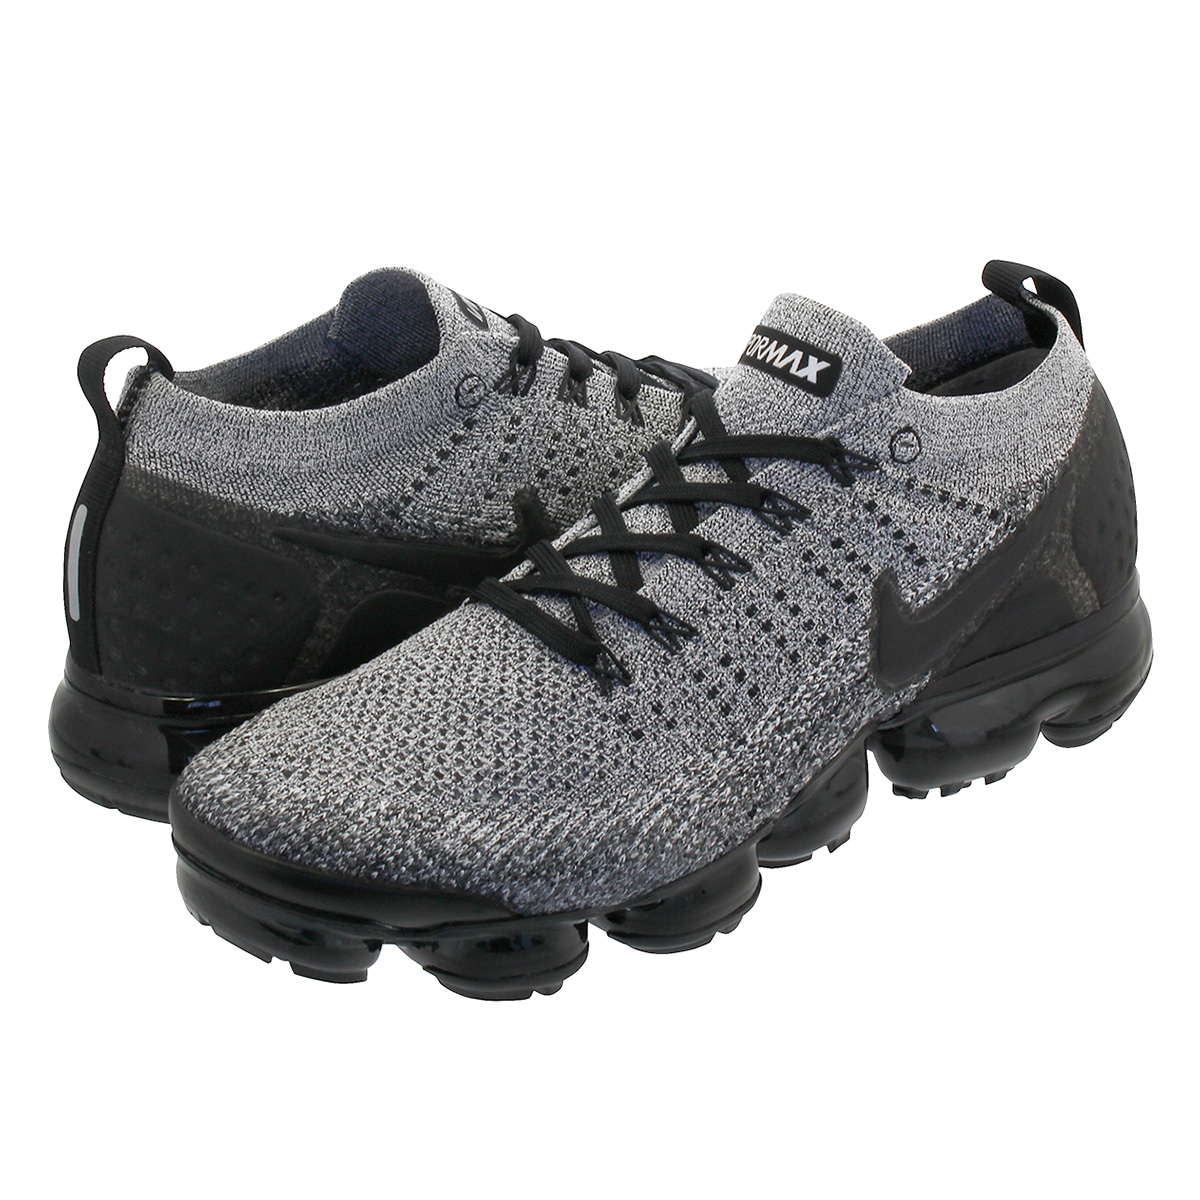 best website 7c147 d6460 NIKE AIR VAPORMAX FLYKNIT 2 Nike vapor max fried food knit 2  WHITE/BLACK/BLACK 942,842-107